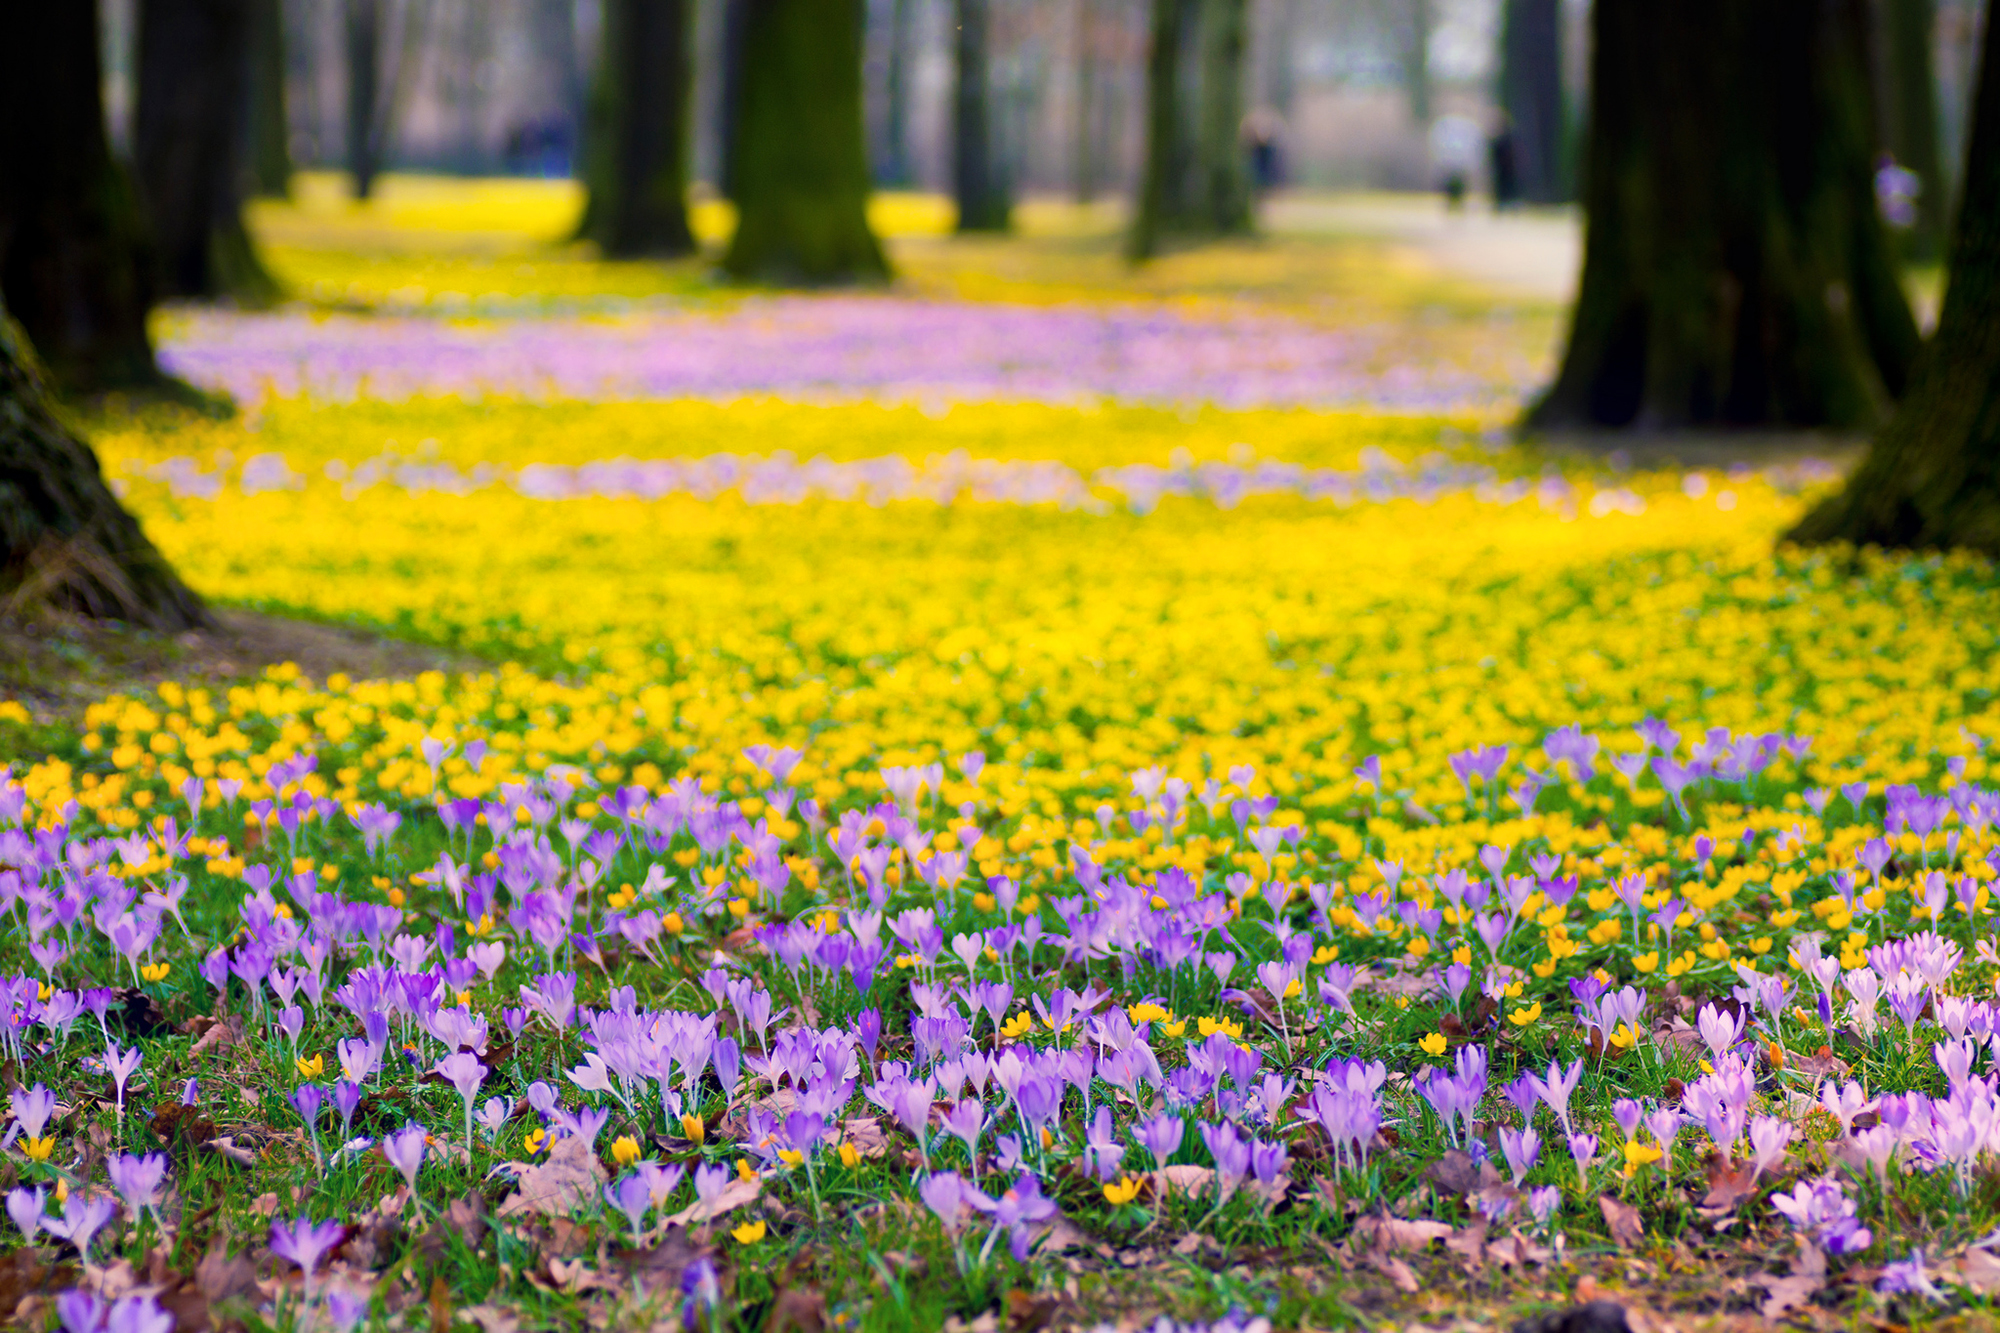 purple flowers yellow park trees nature spring wallpapers nature 2000x1333